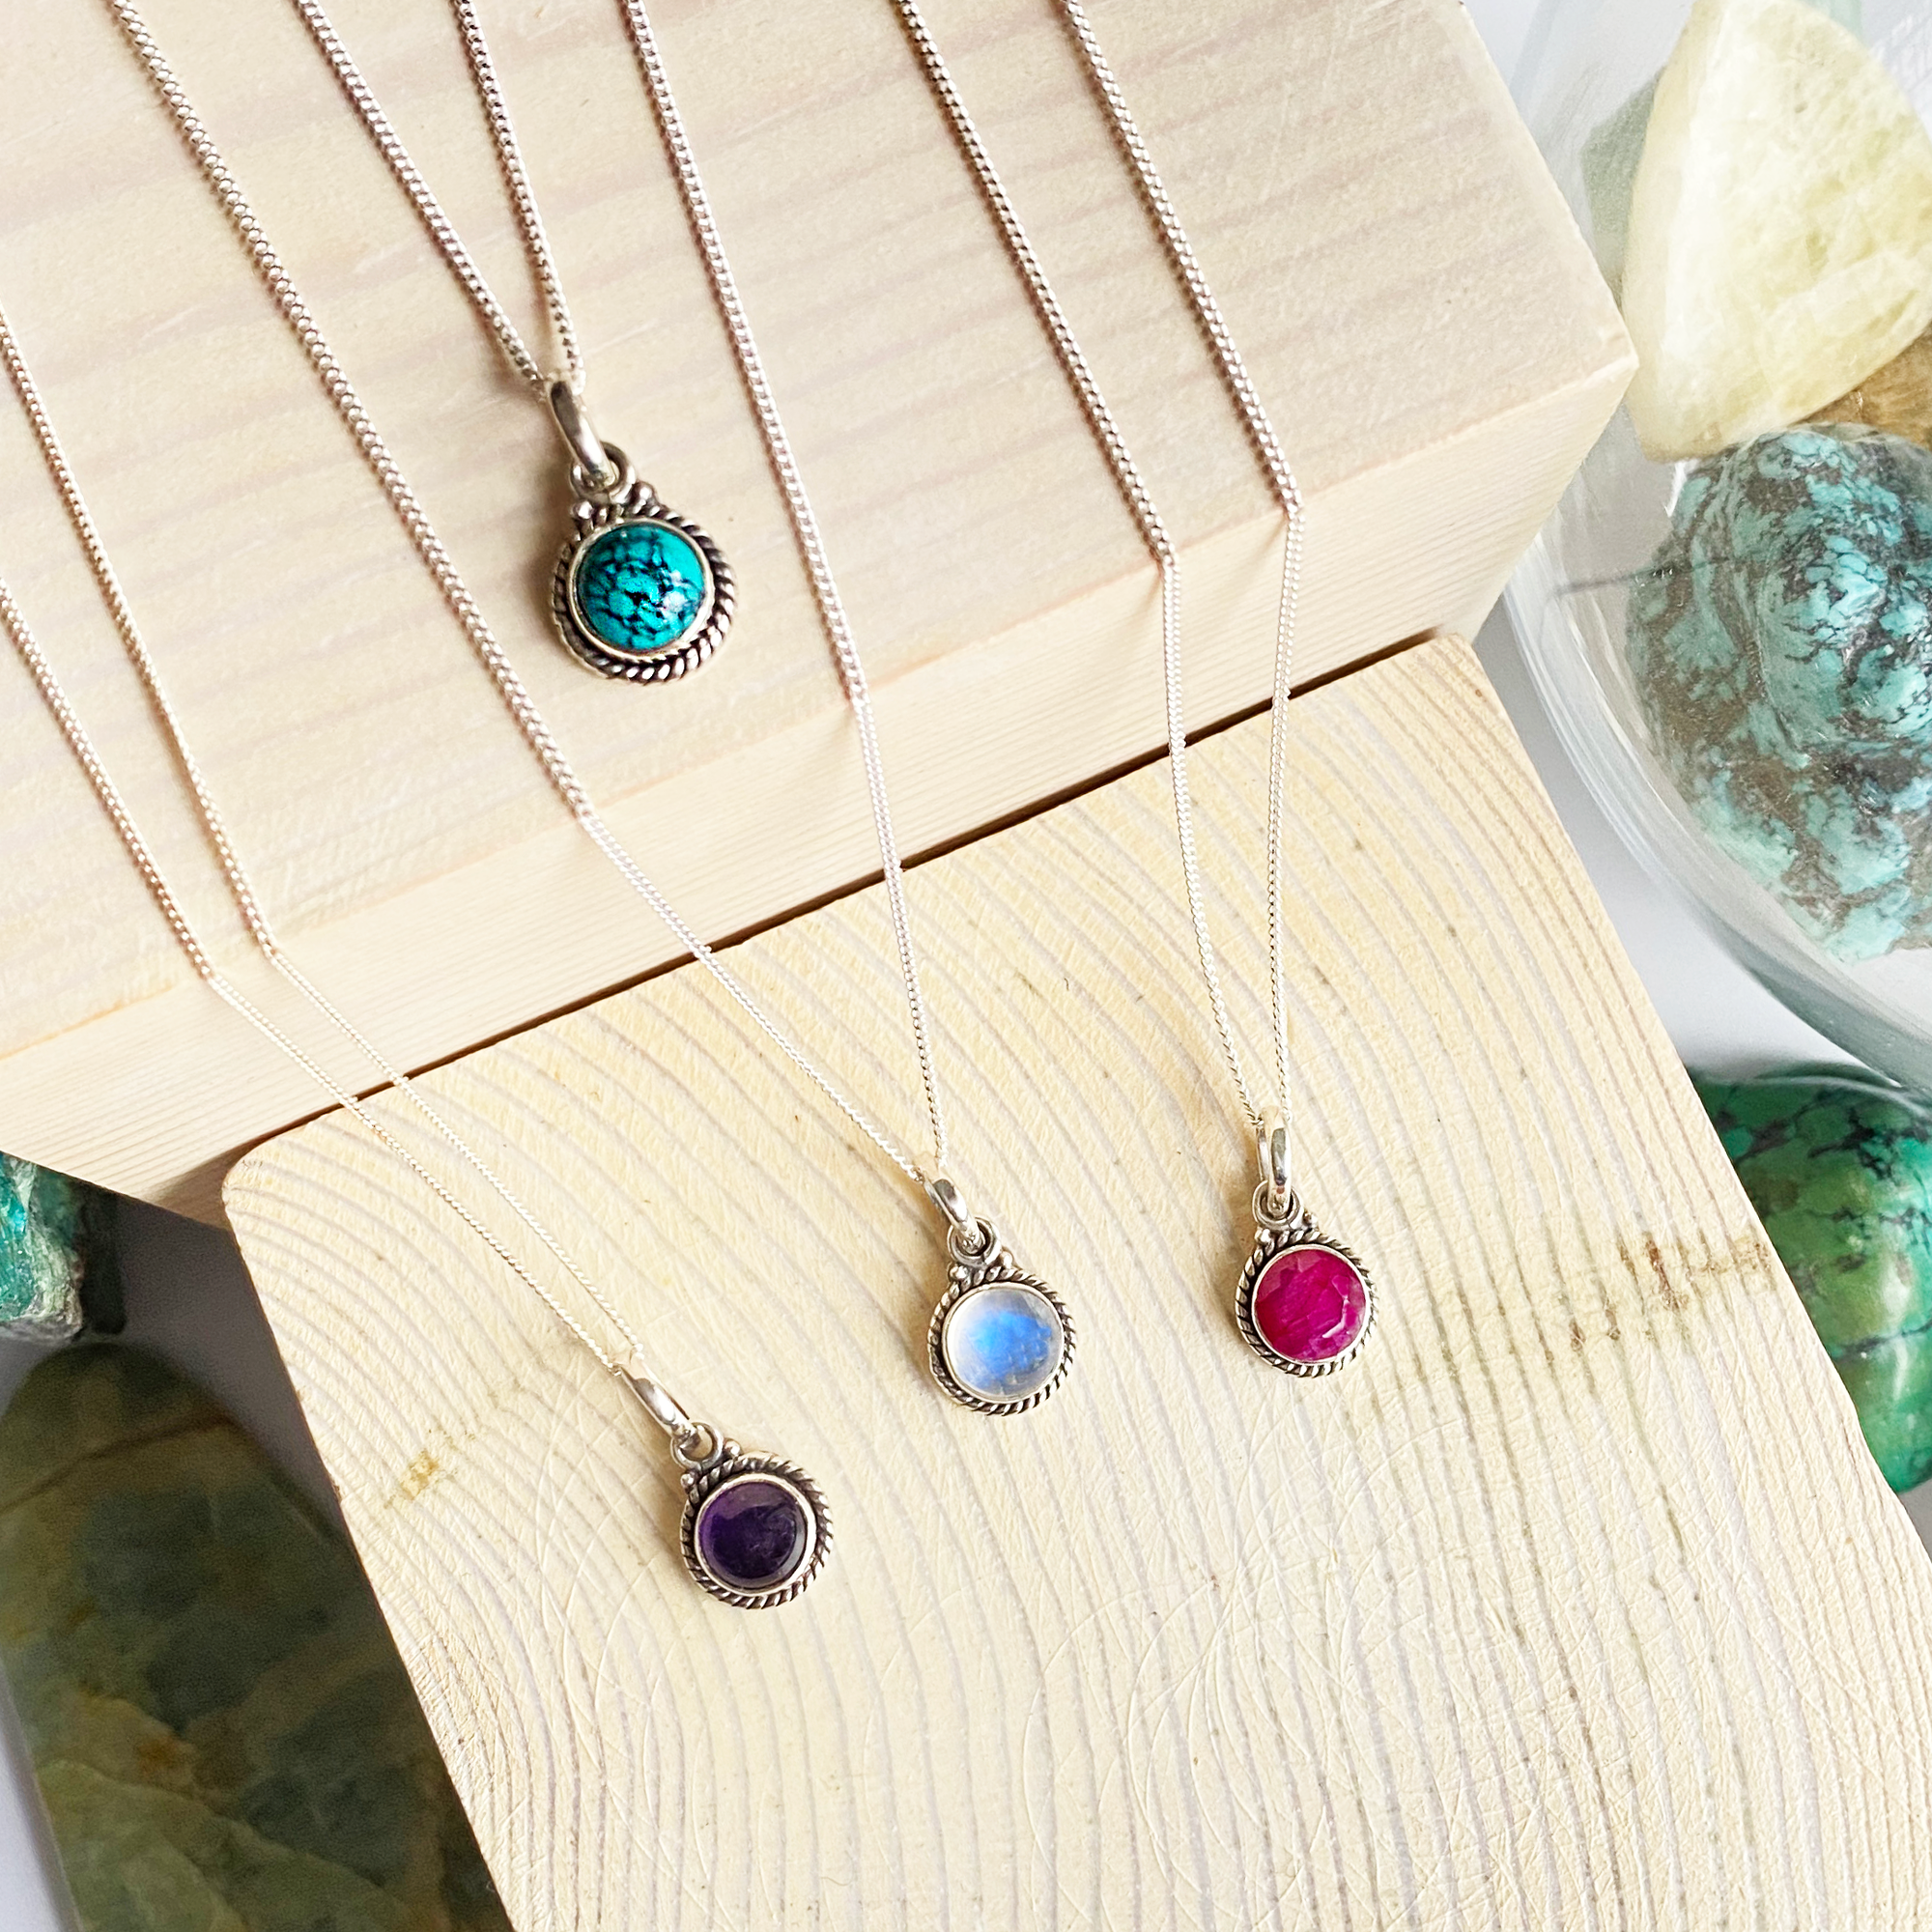 Tiny Round Silver Pendants with Gemstones